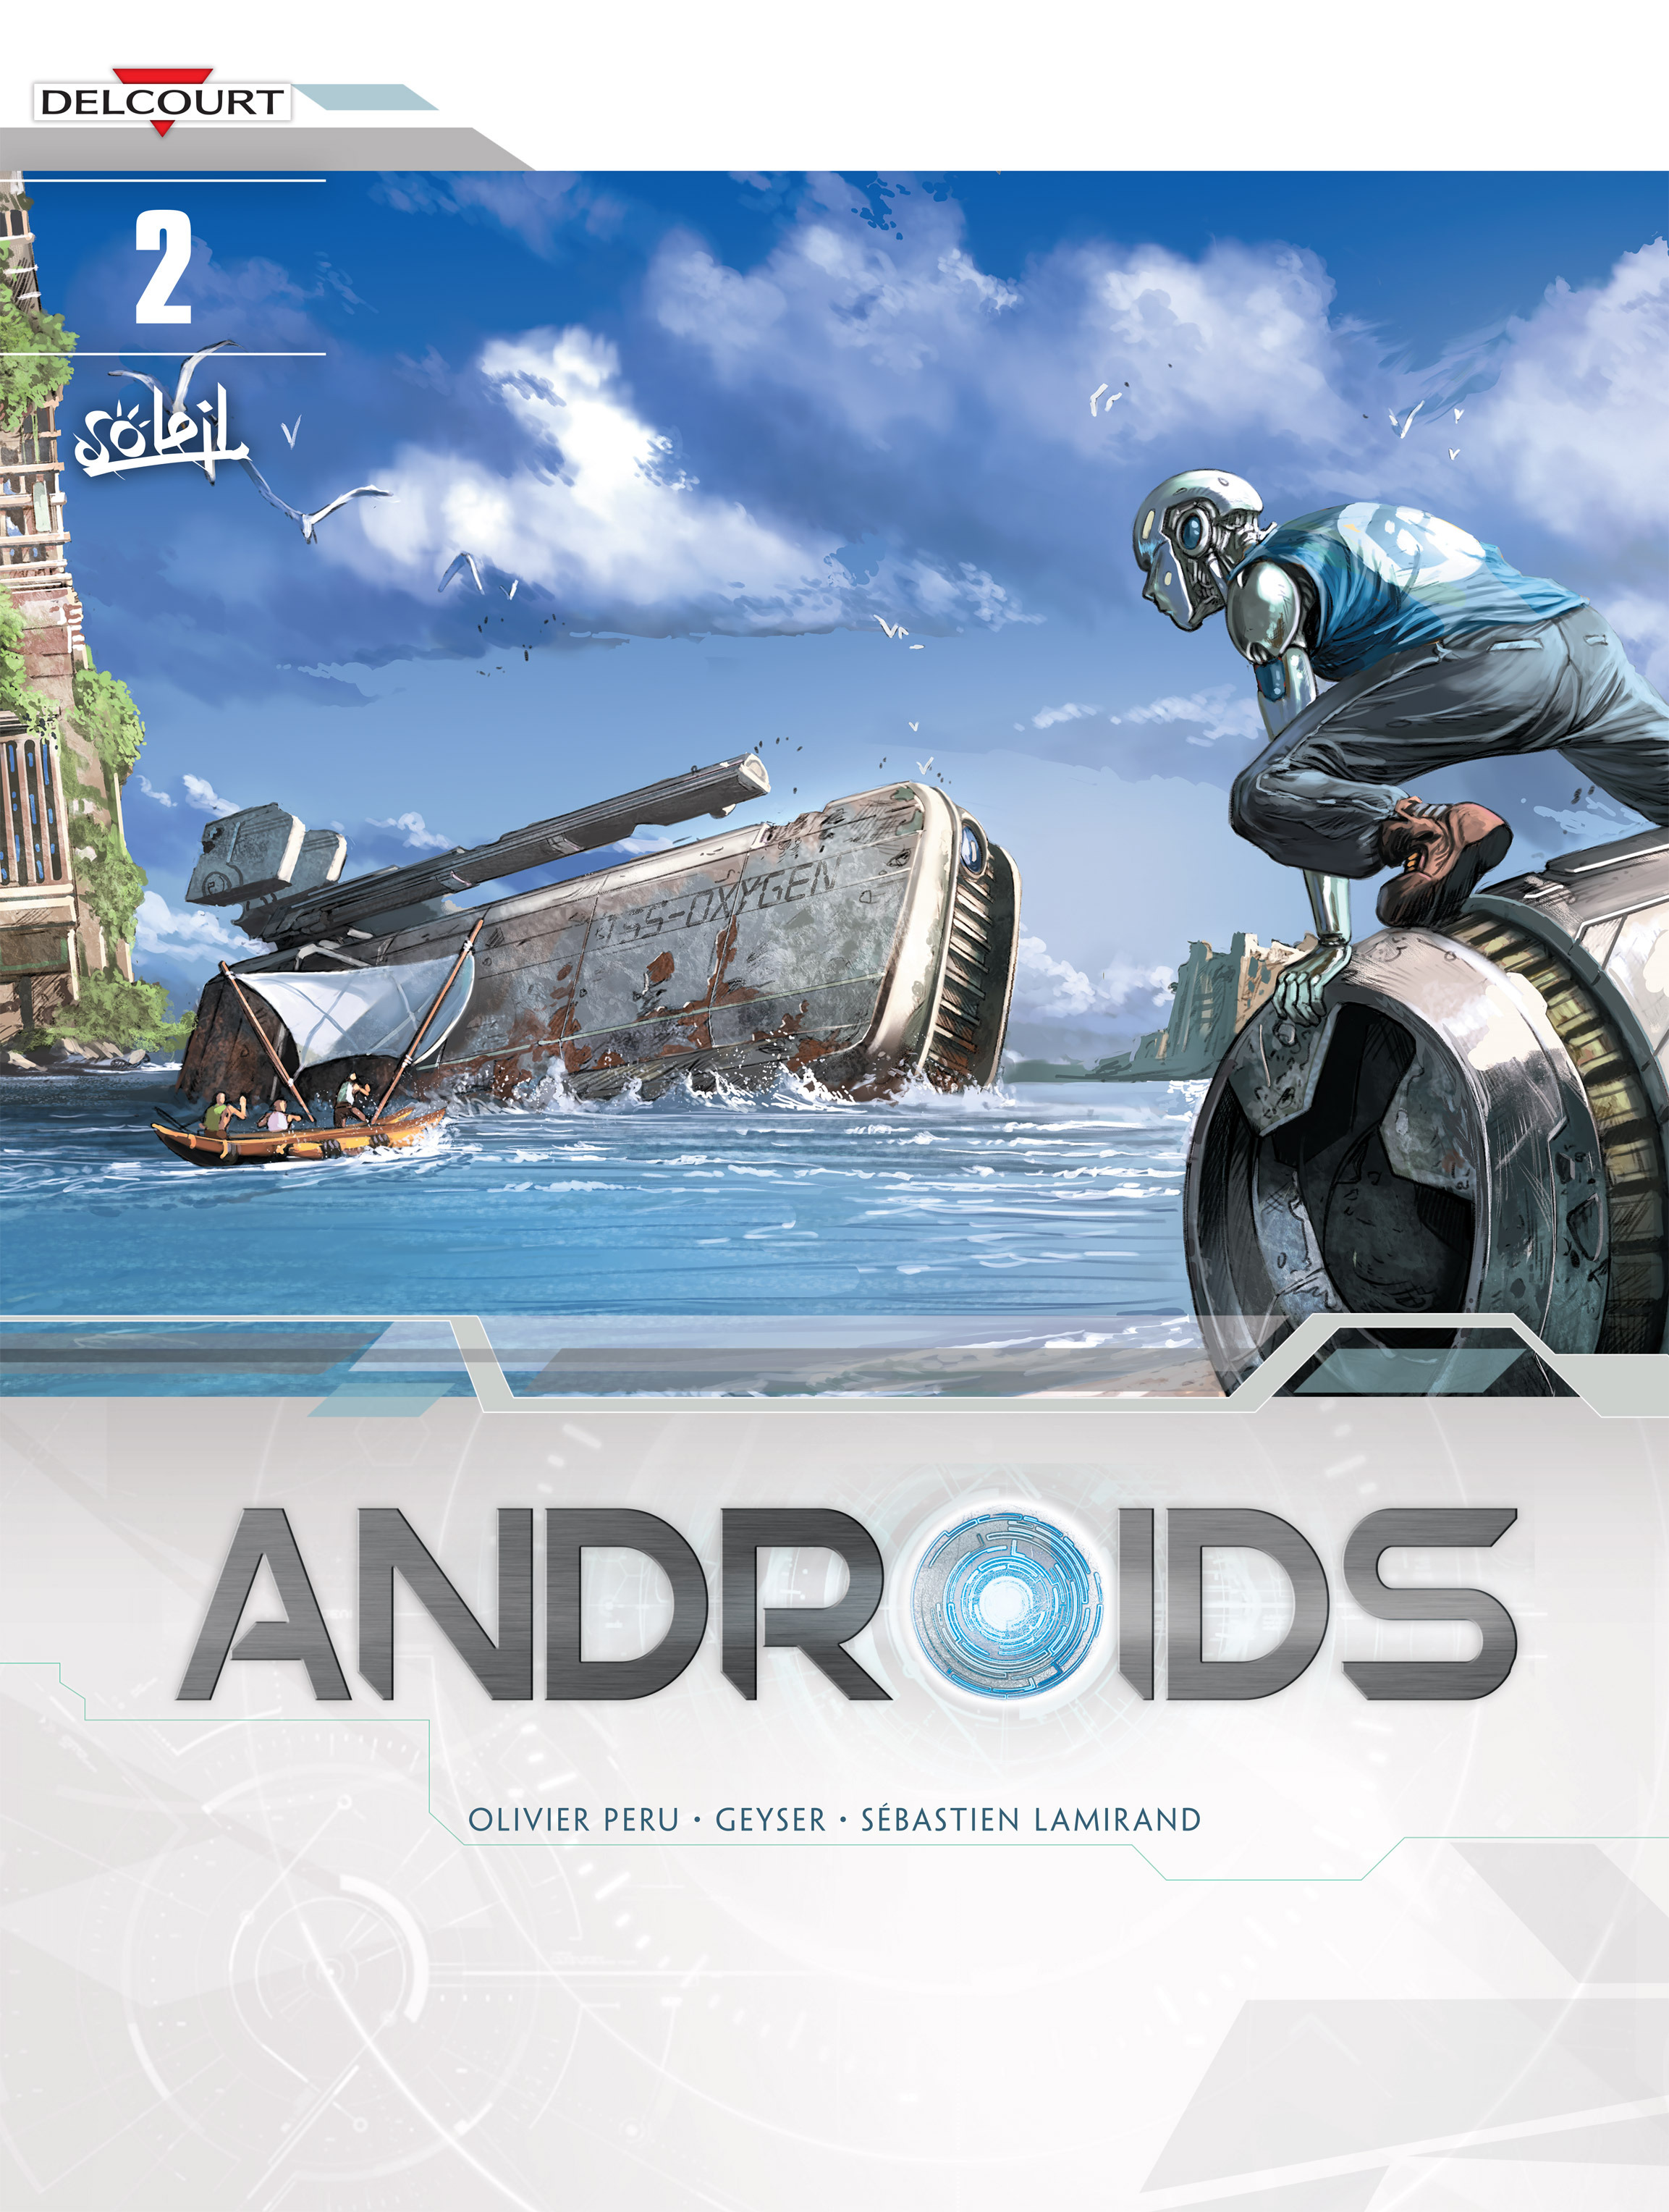 Read online Androïds comic -  Issue #2 - 1